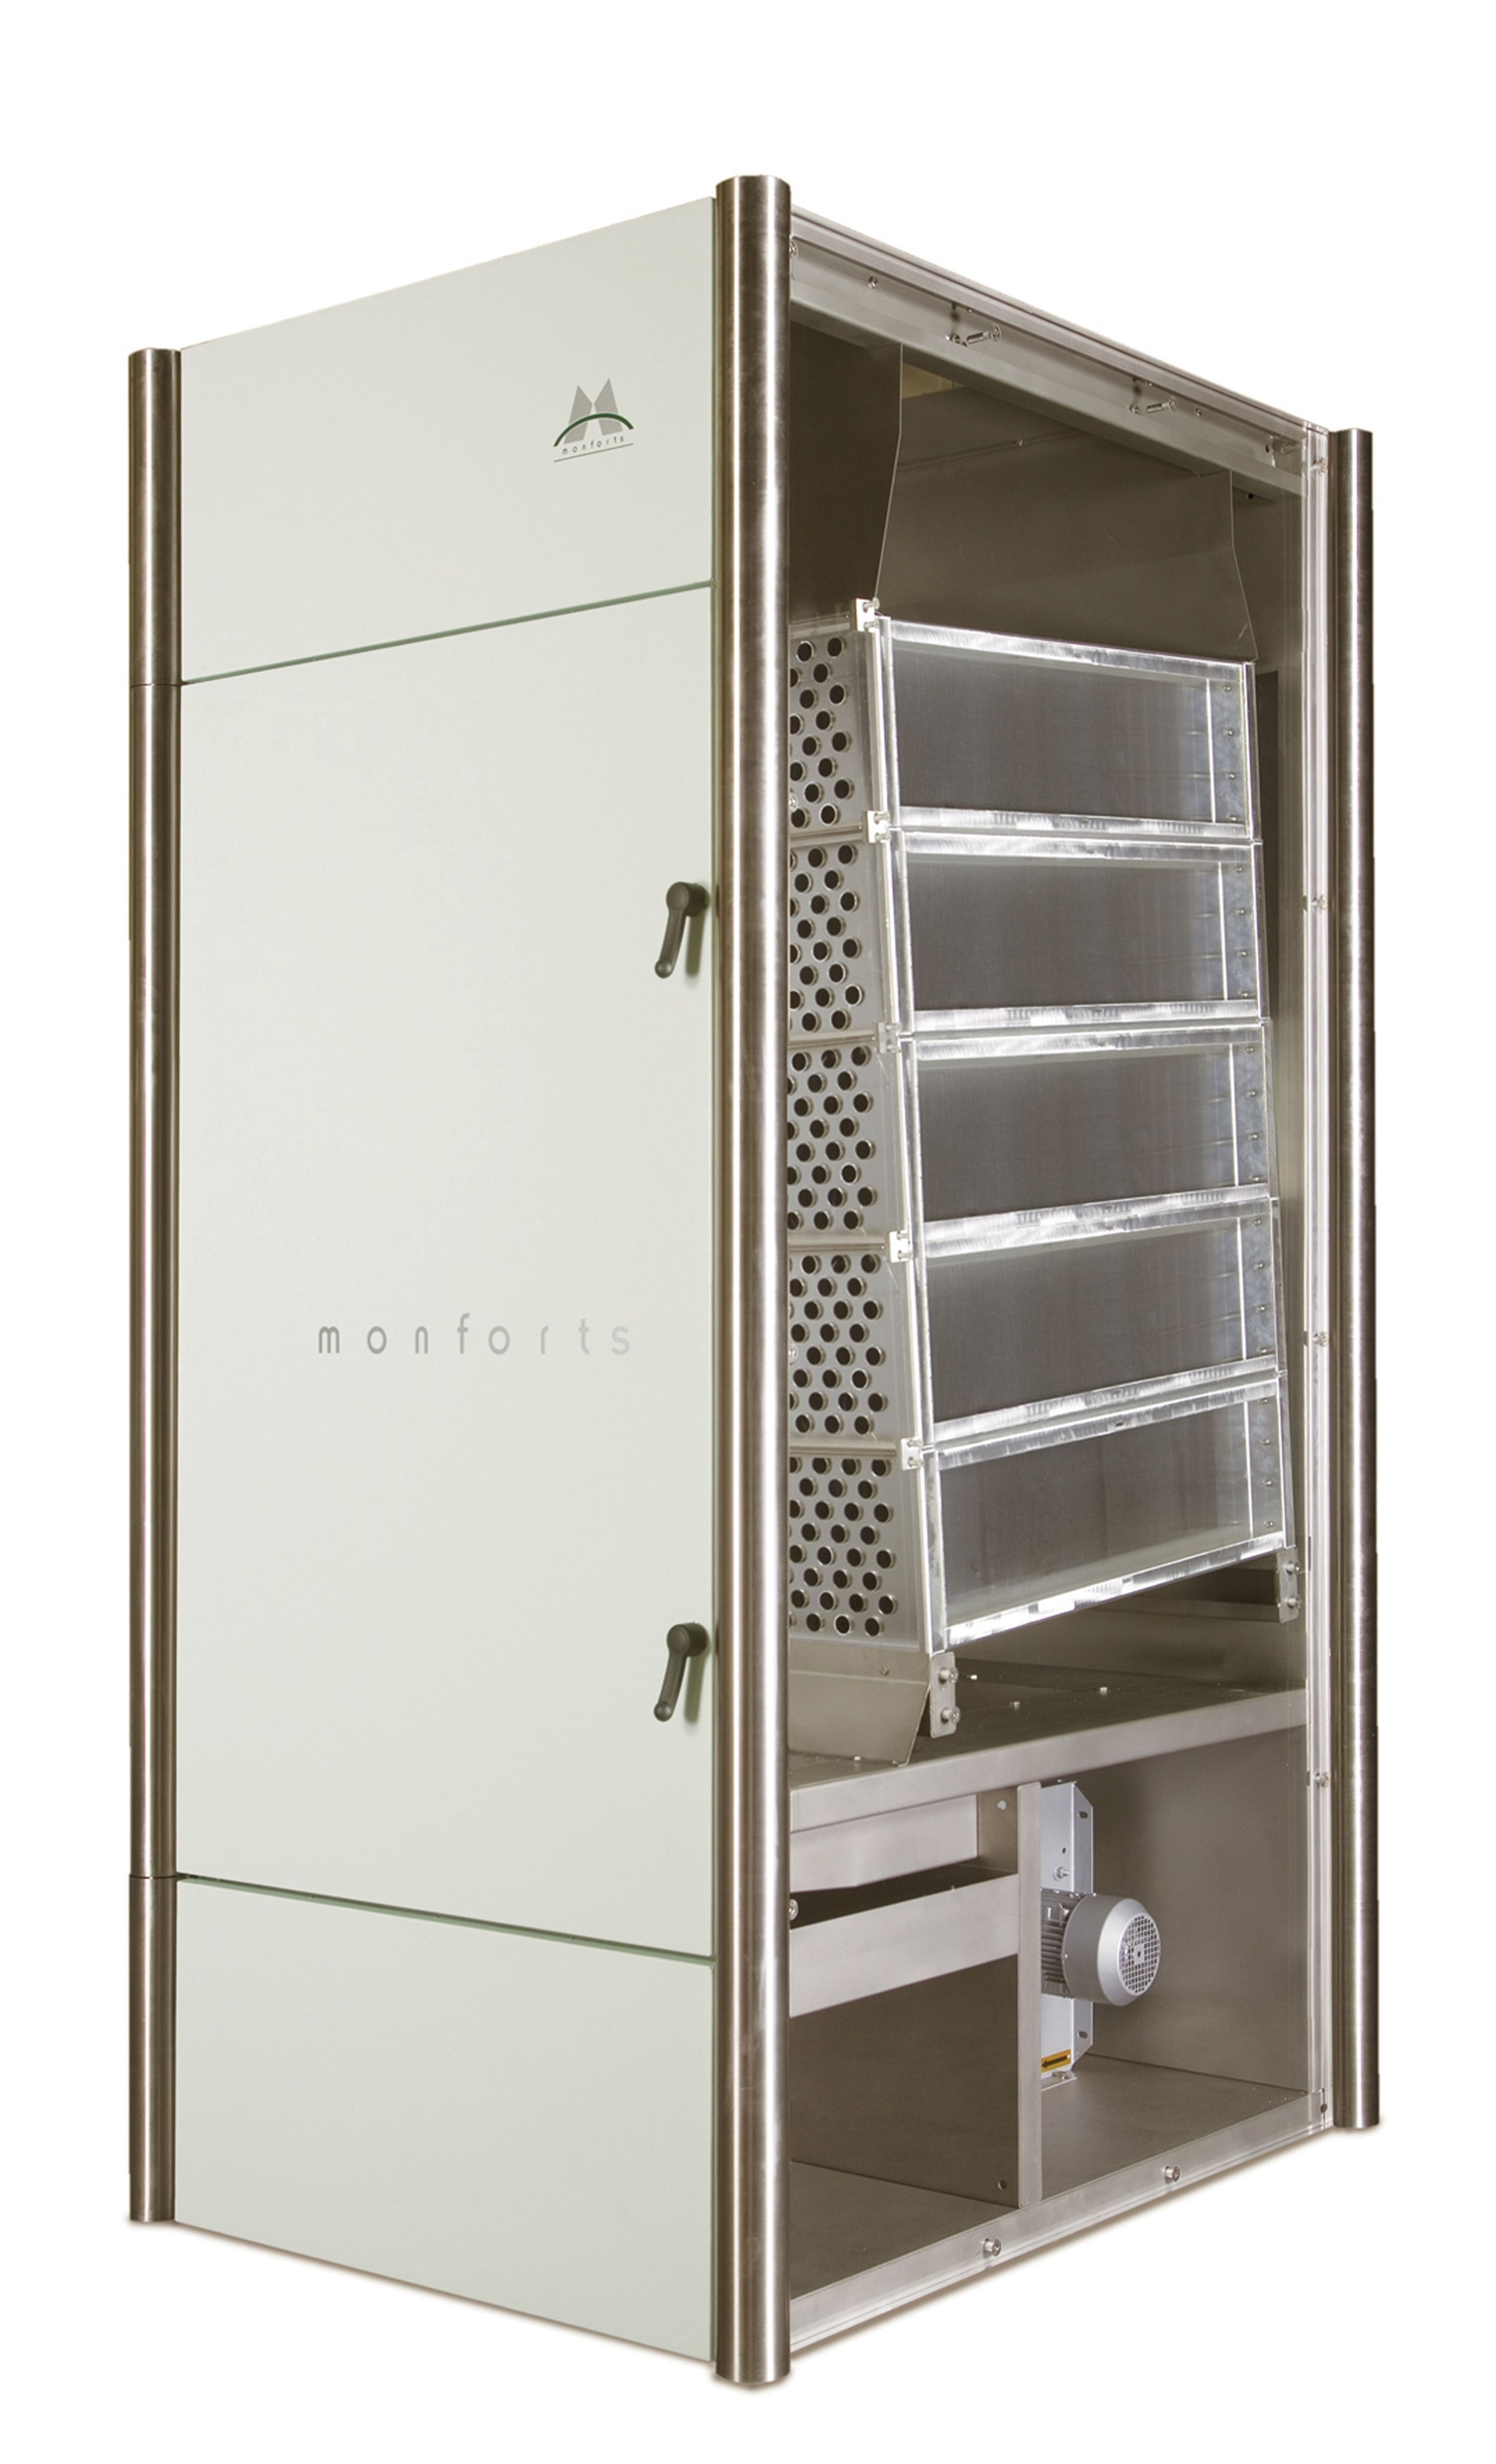 The 'Energy Tower' is a standalone air/air heat exchanger